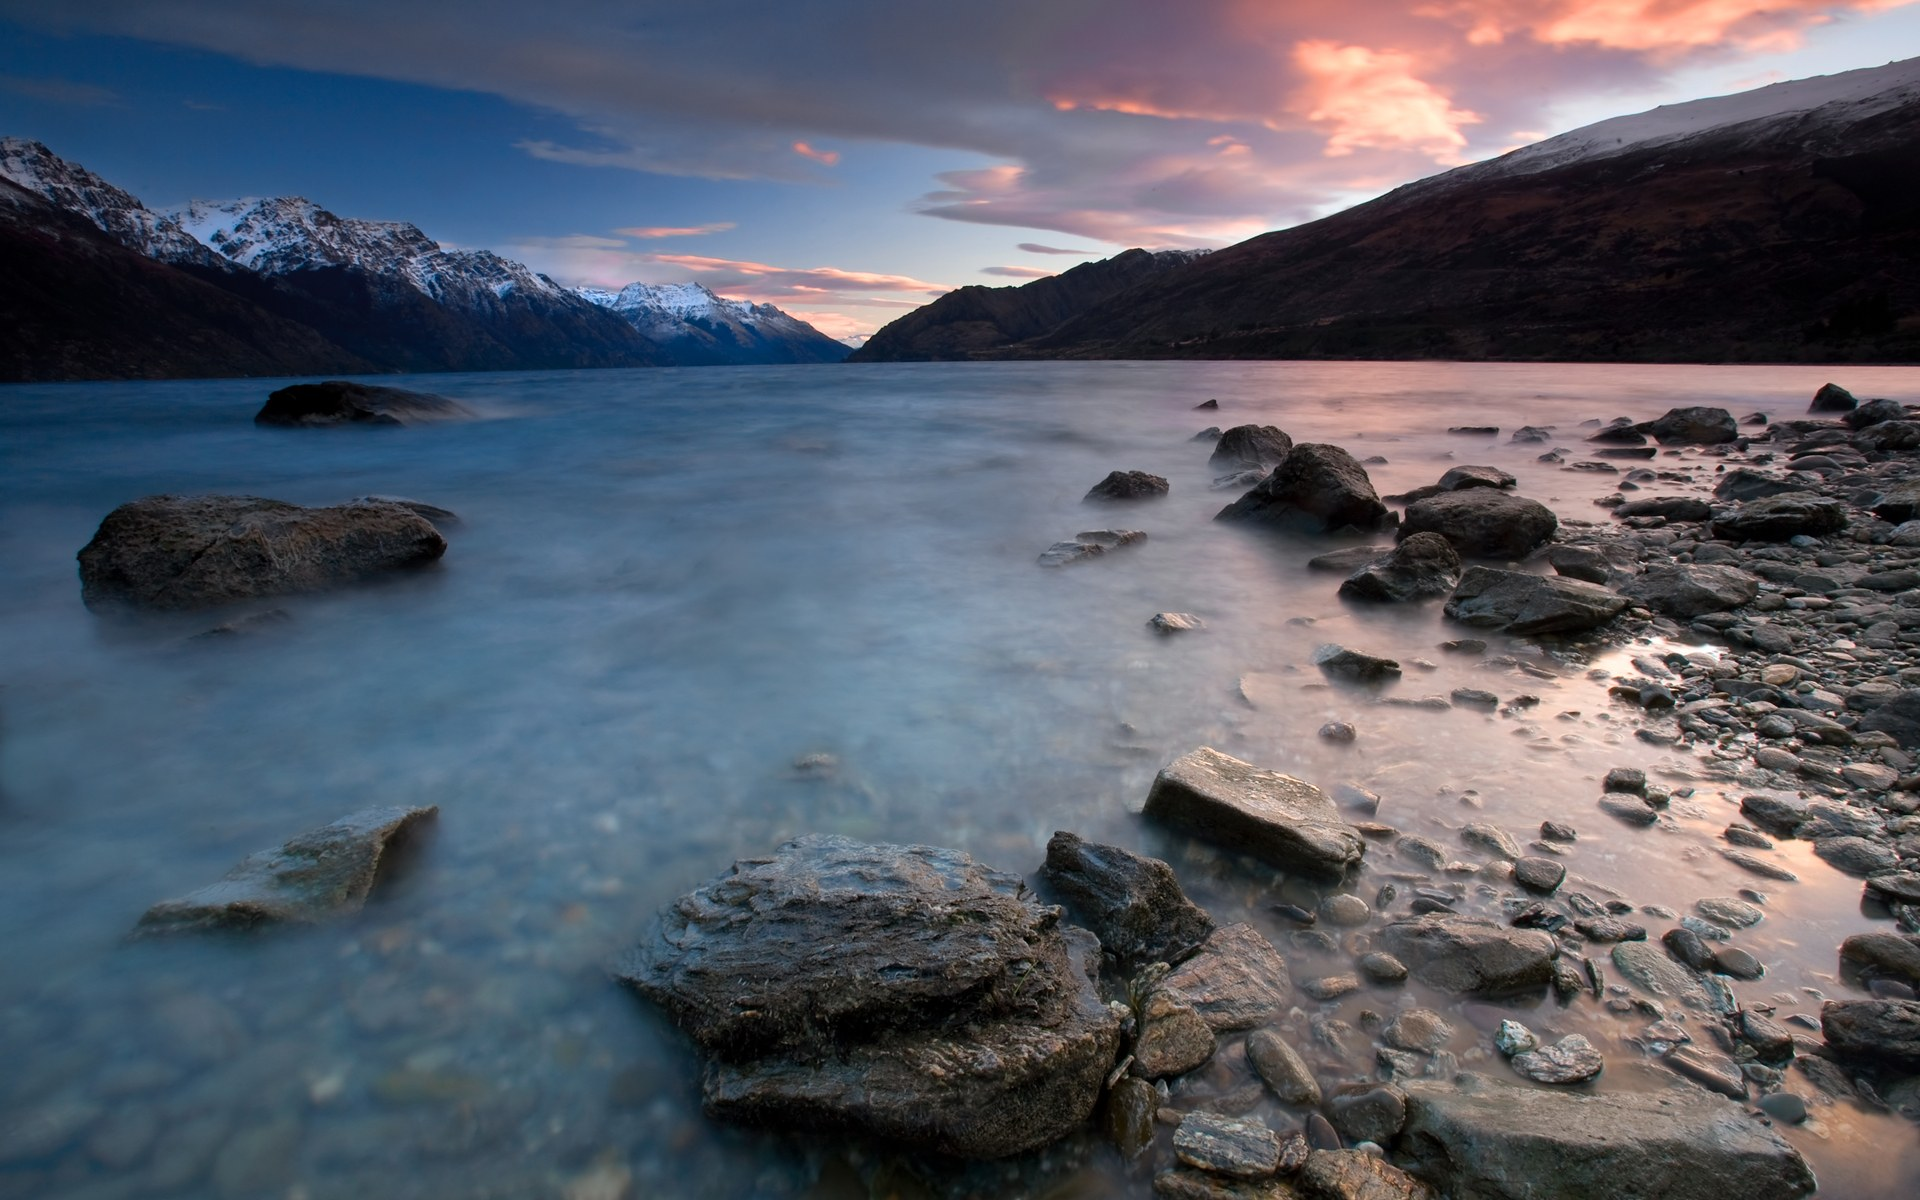 Sunrise in New Zealand over a mountain lake